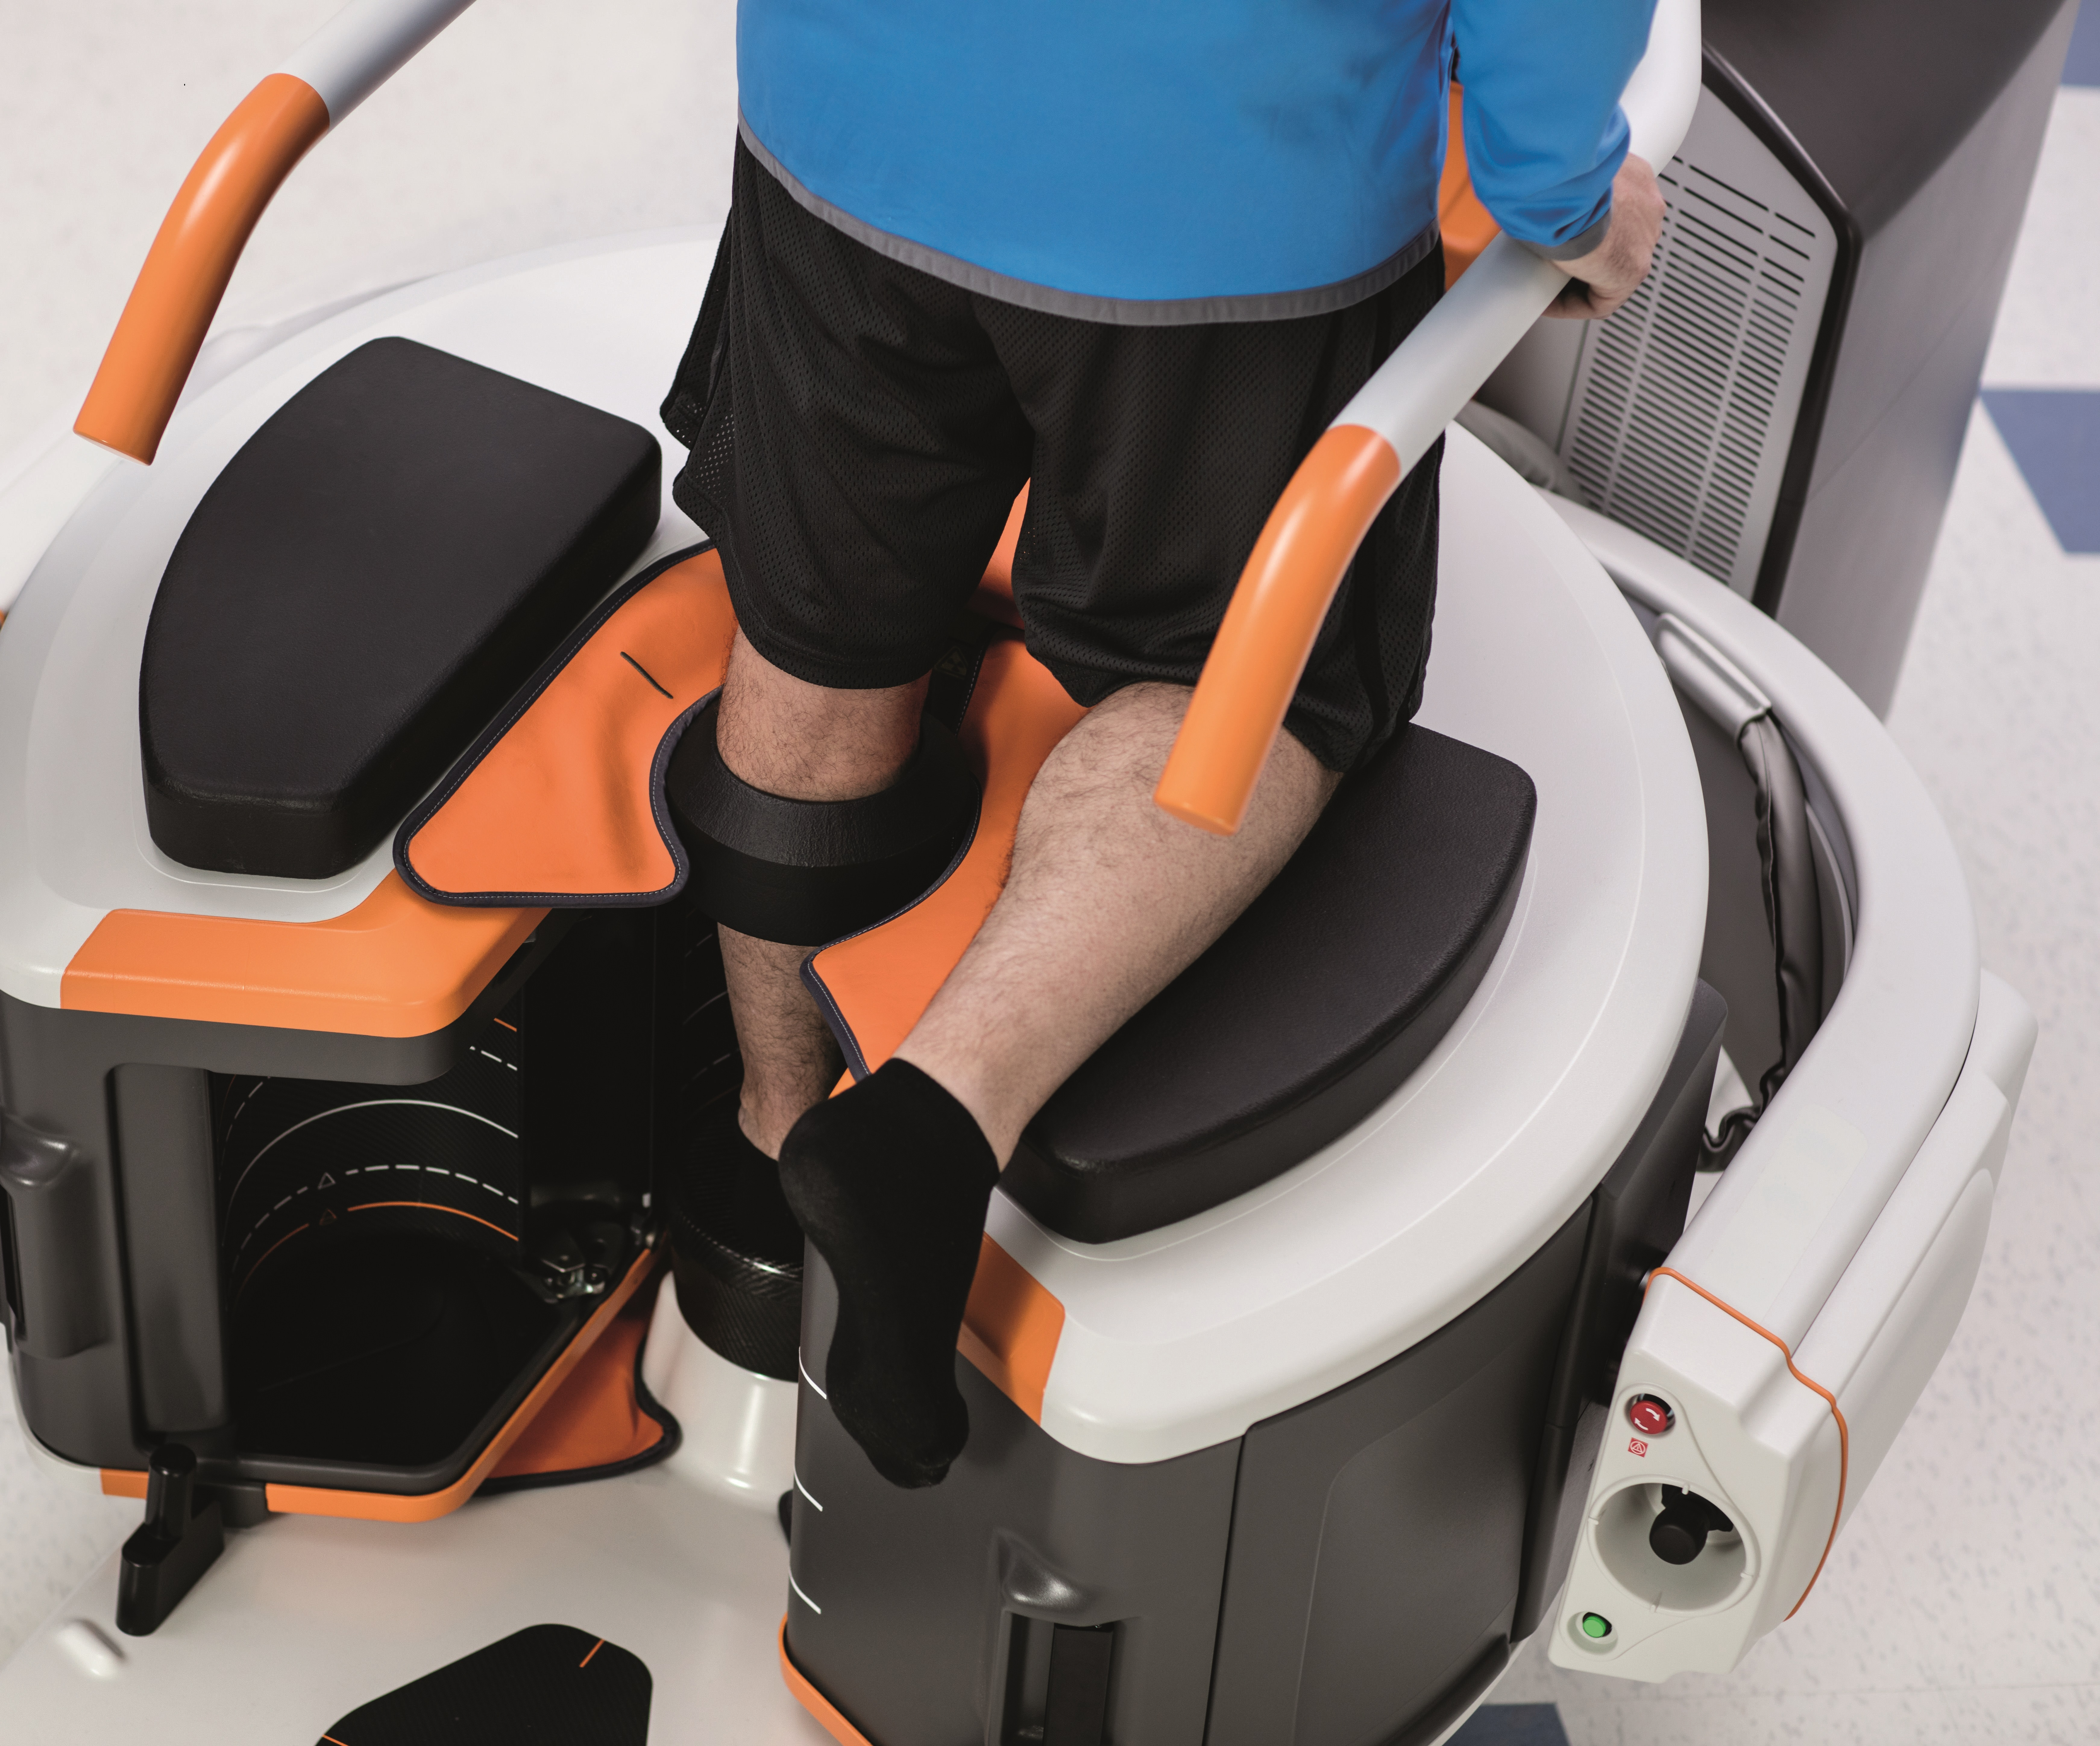 Carestream's compact OnSight 3D Extremity System equips sports medicine and orthopaedic specialists to capture 3D and weight-bearing exams of hands, wrists, elbows, knees, feet and ankles. (Photo: Business Wire)